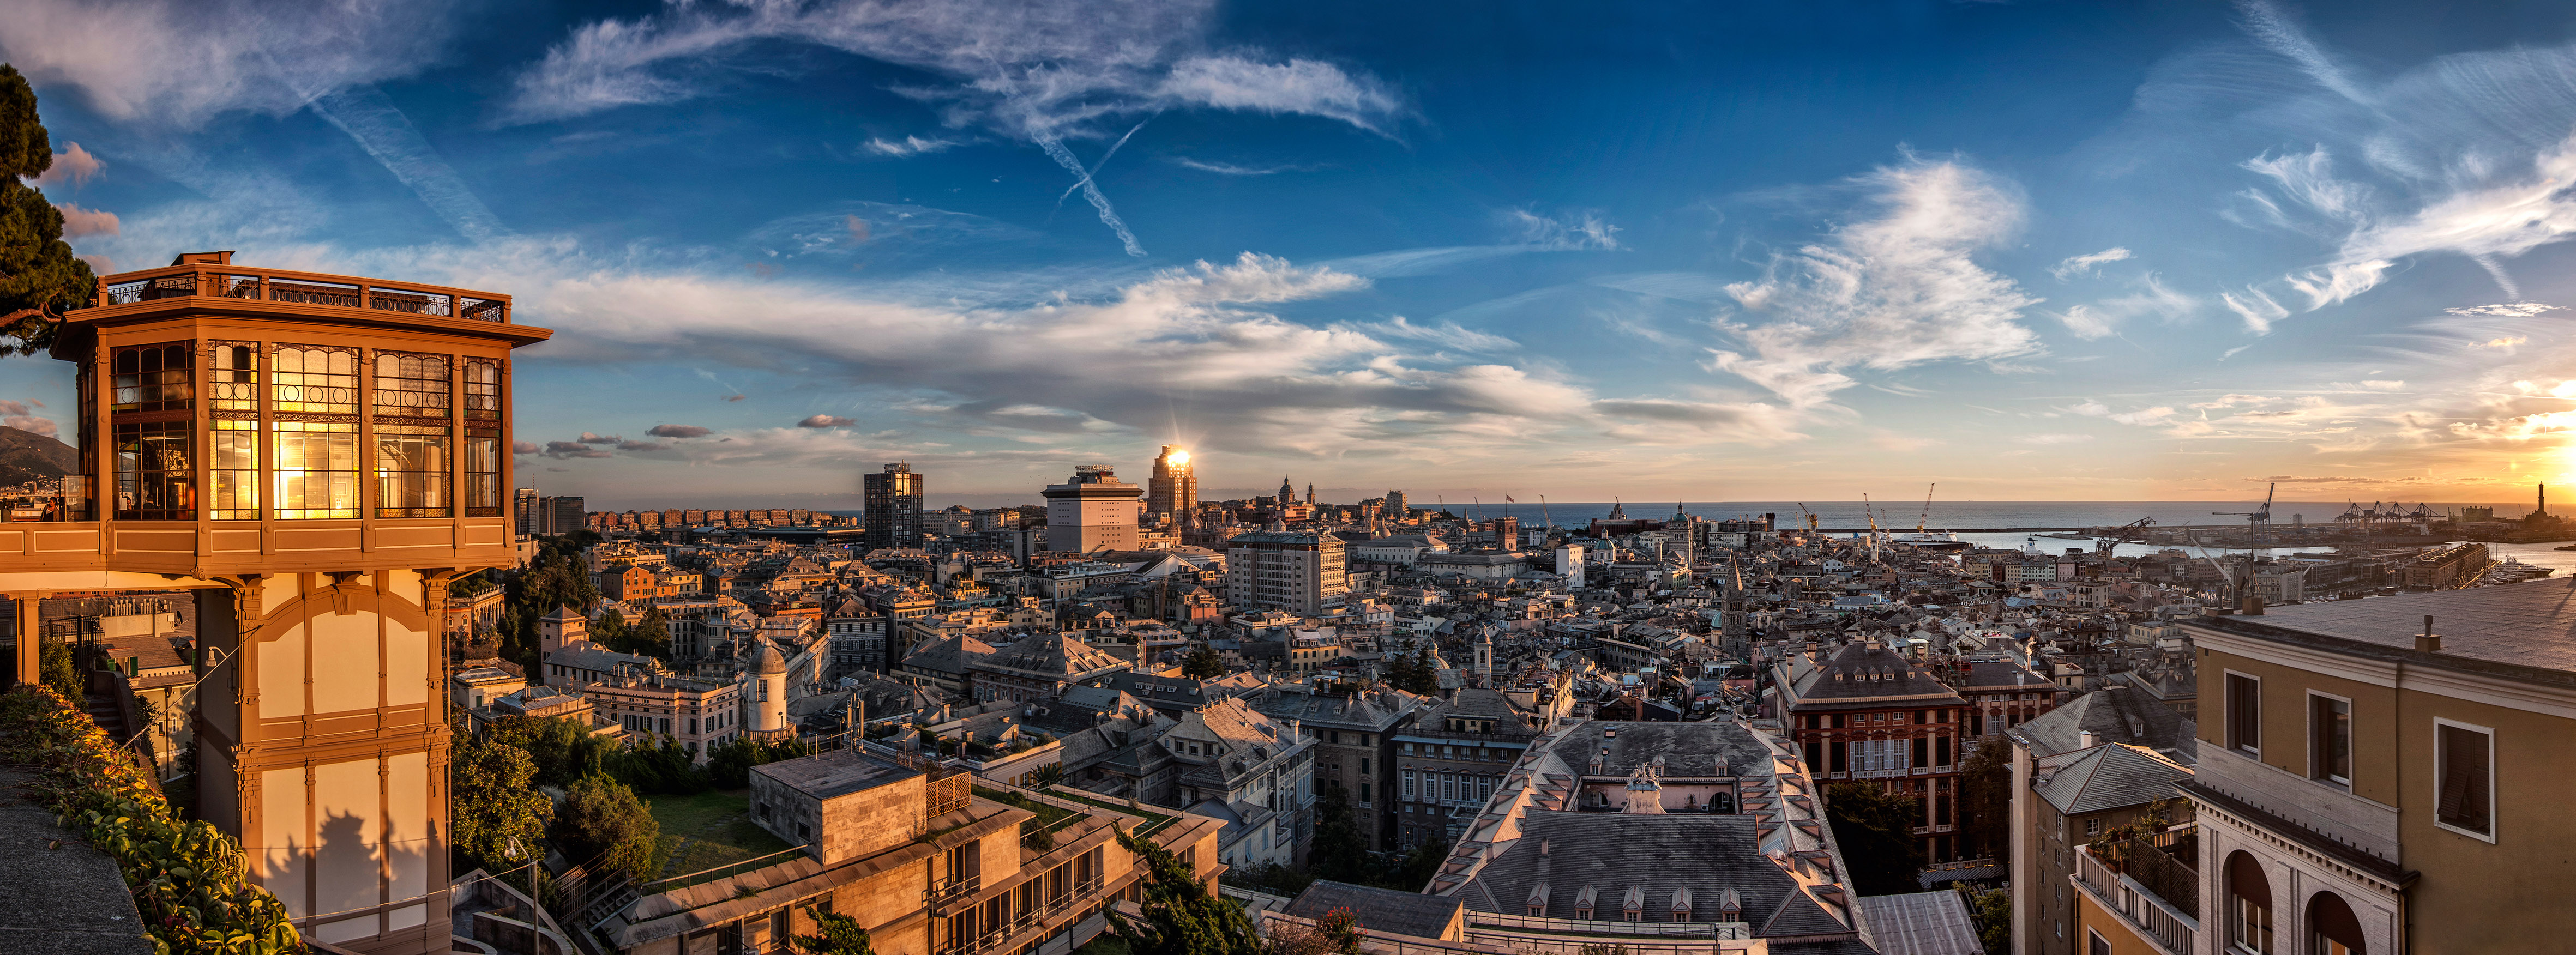 Capital Region Cars >> Genoa: A Vertical City, Wedged Between Mountains and Sea